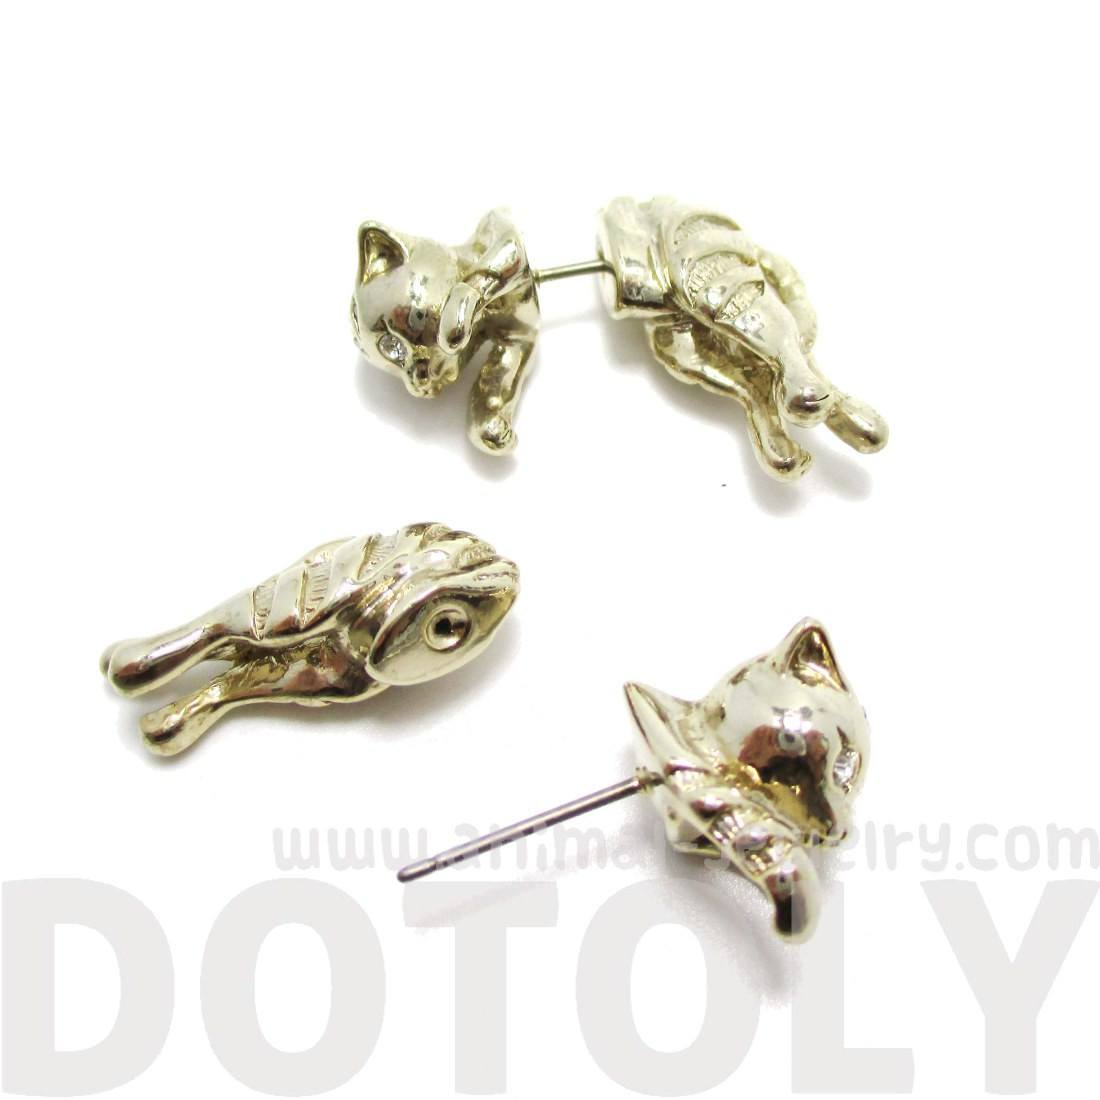 Kitty Cat Shaped Front and Back Stud Earrings in Gold